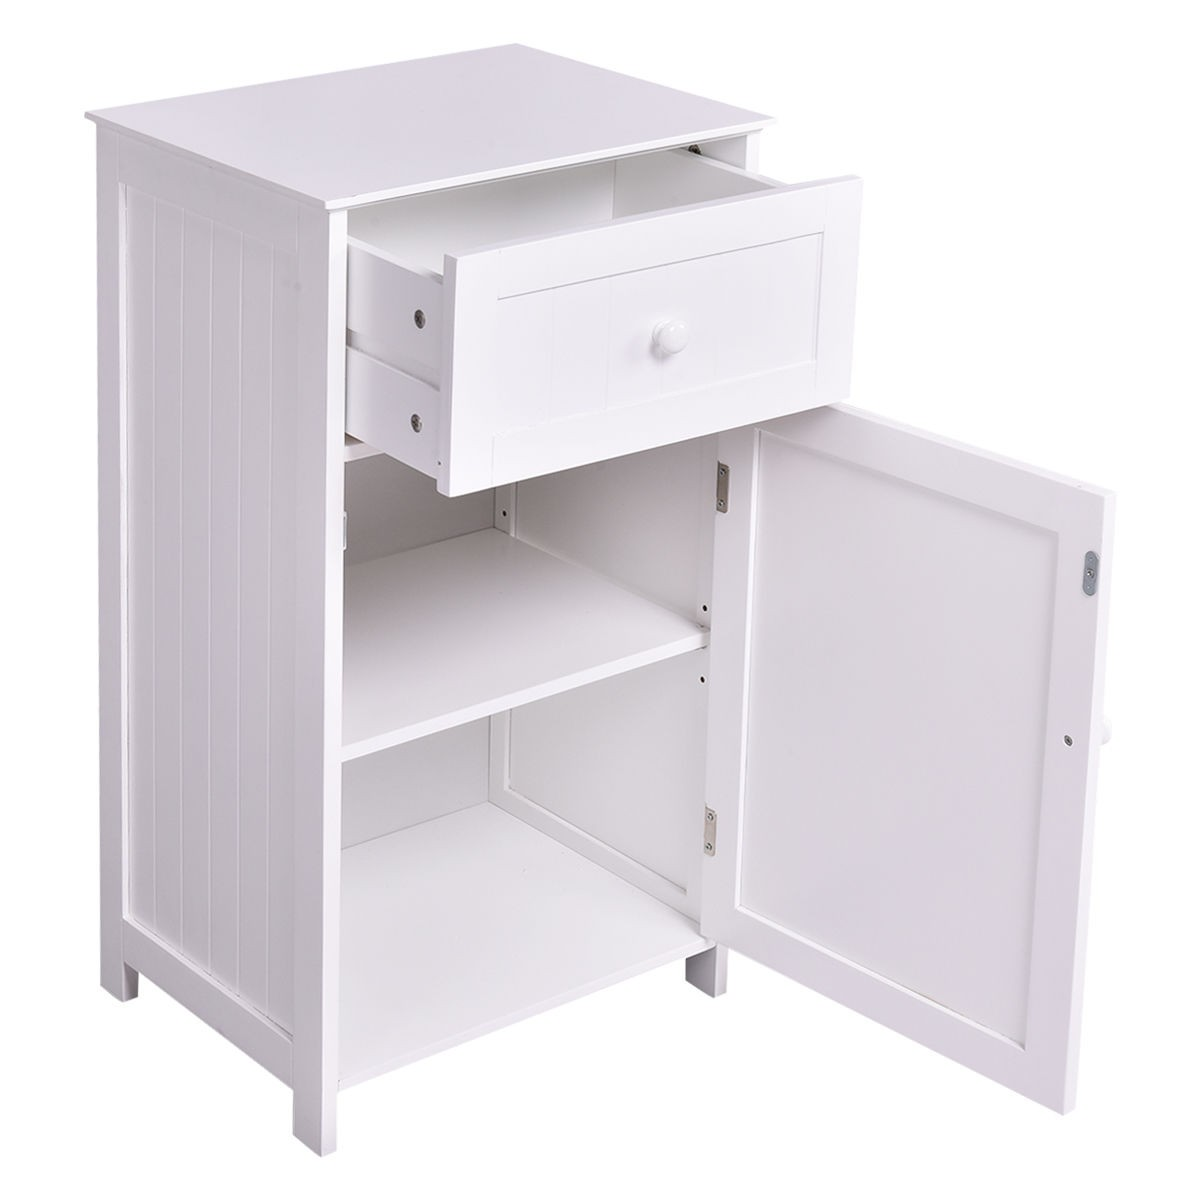 Kitchen bathroom storage cabinet floor stand white wood furniture organizer bath ebay - White kitchen storage cabinet ...